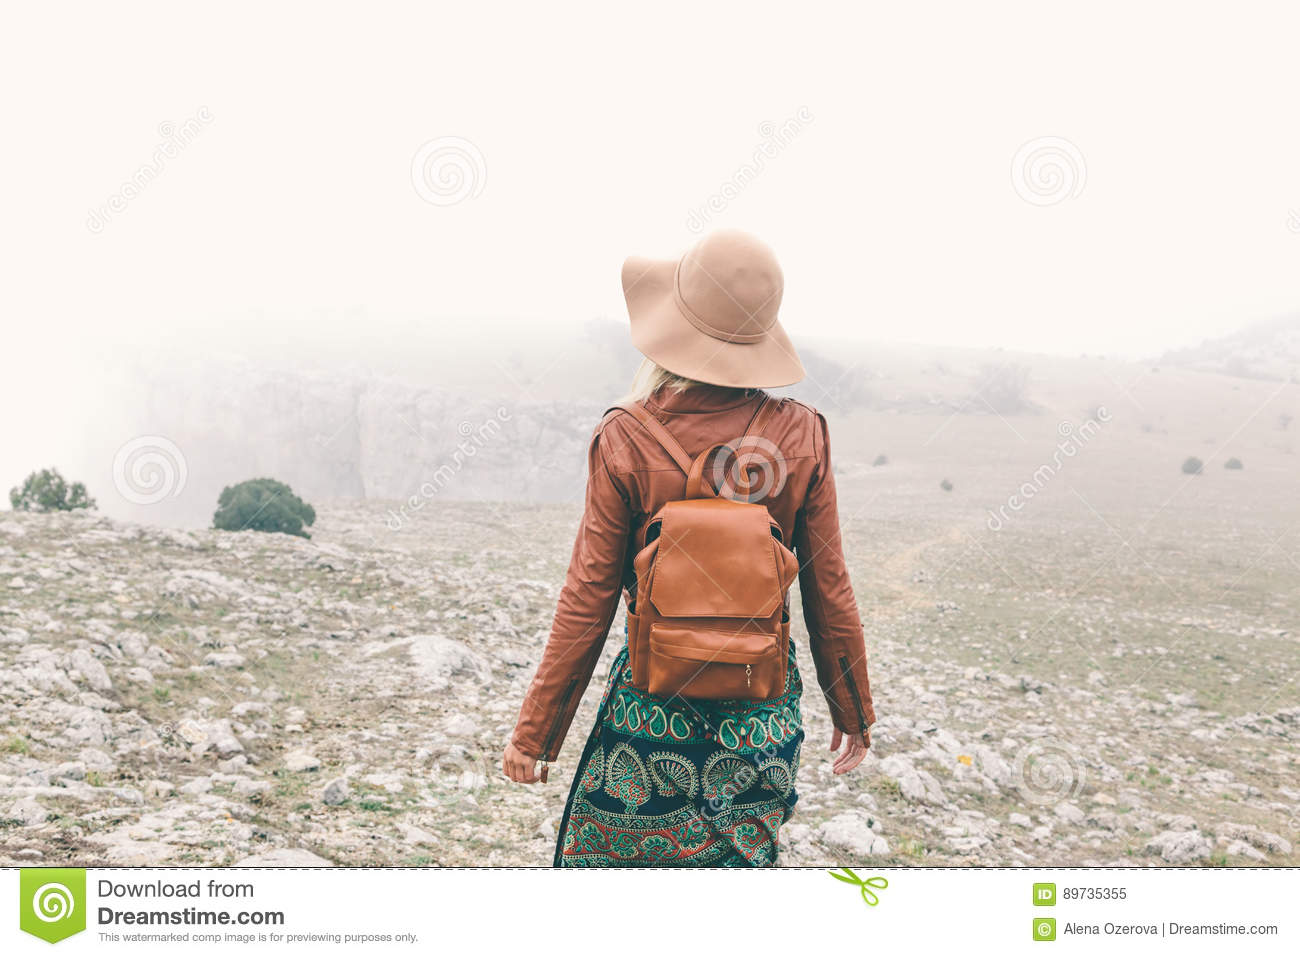 0fde2ce207605 Boho woman wearing hat and leather jacket walking in mountains. Cold  weather and fog. Spring or fall hiking. Wanderlust.